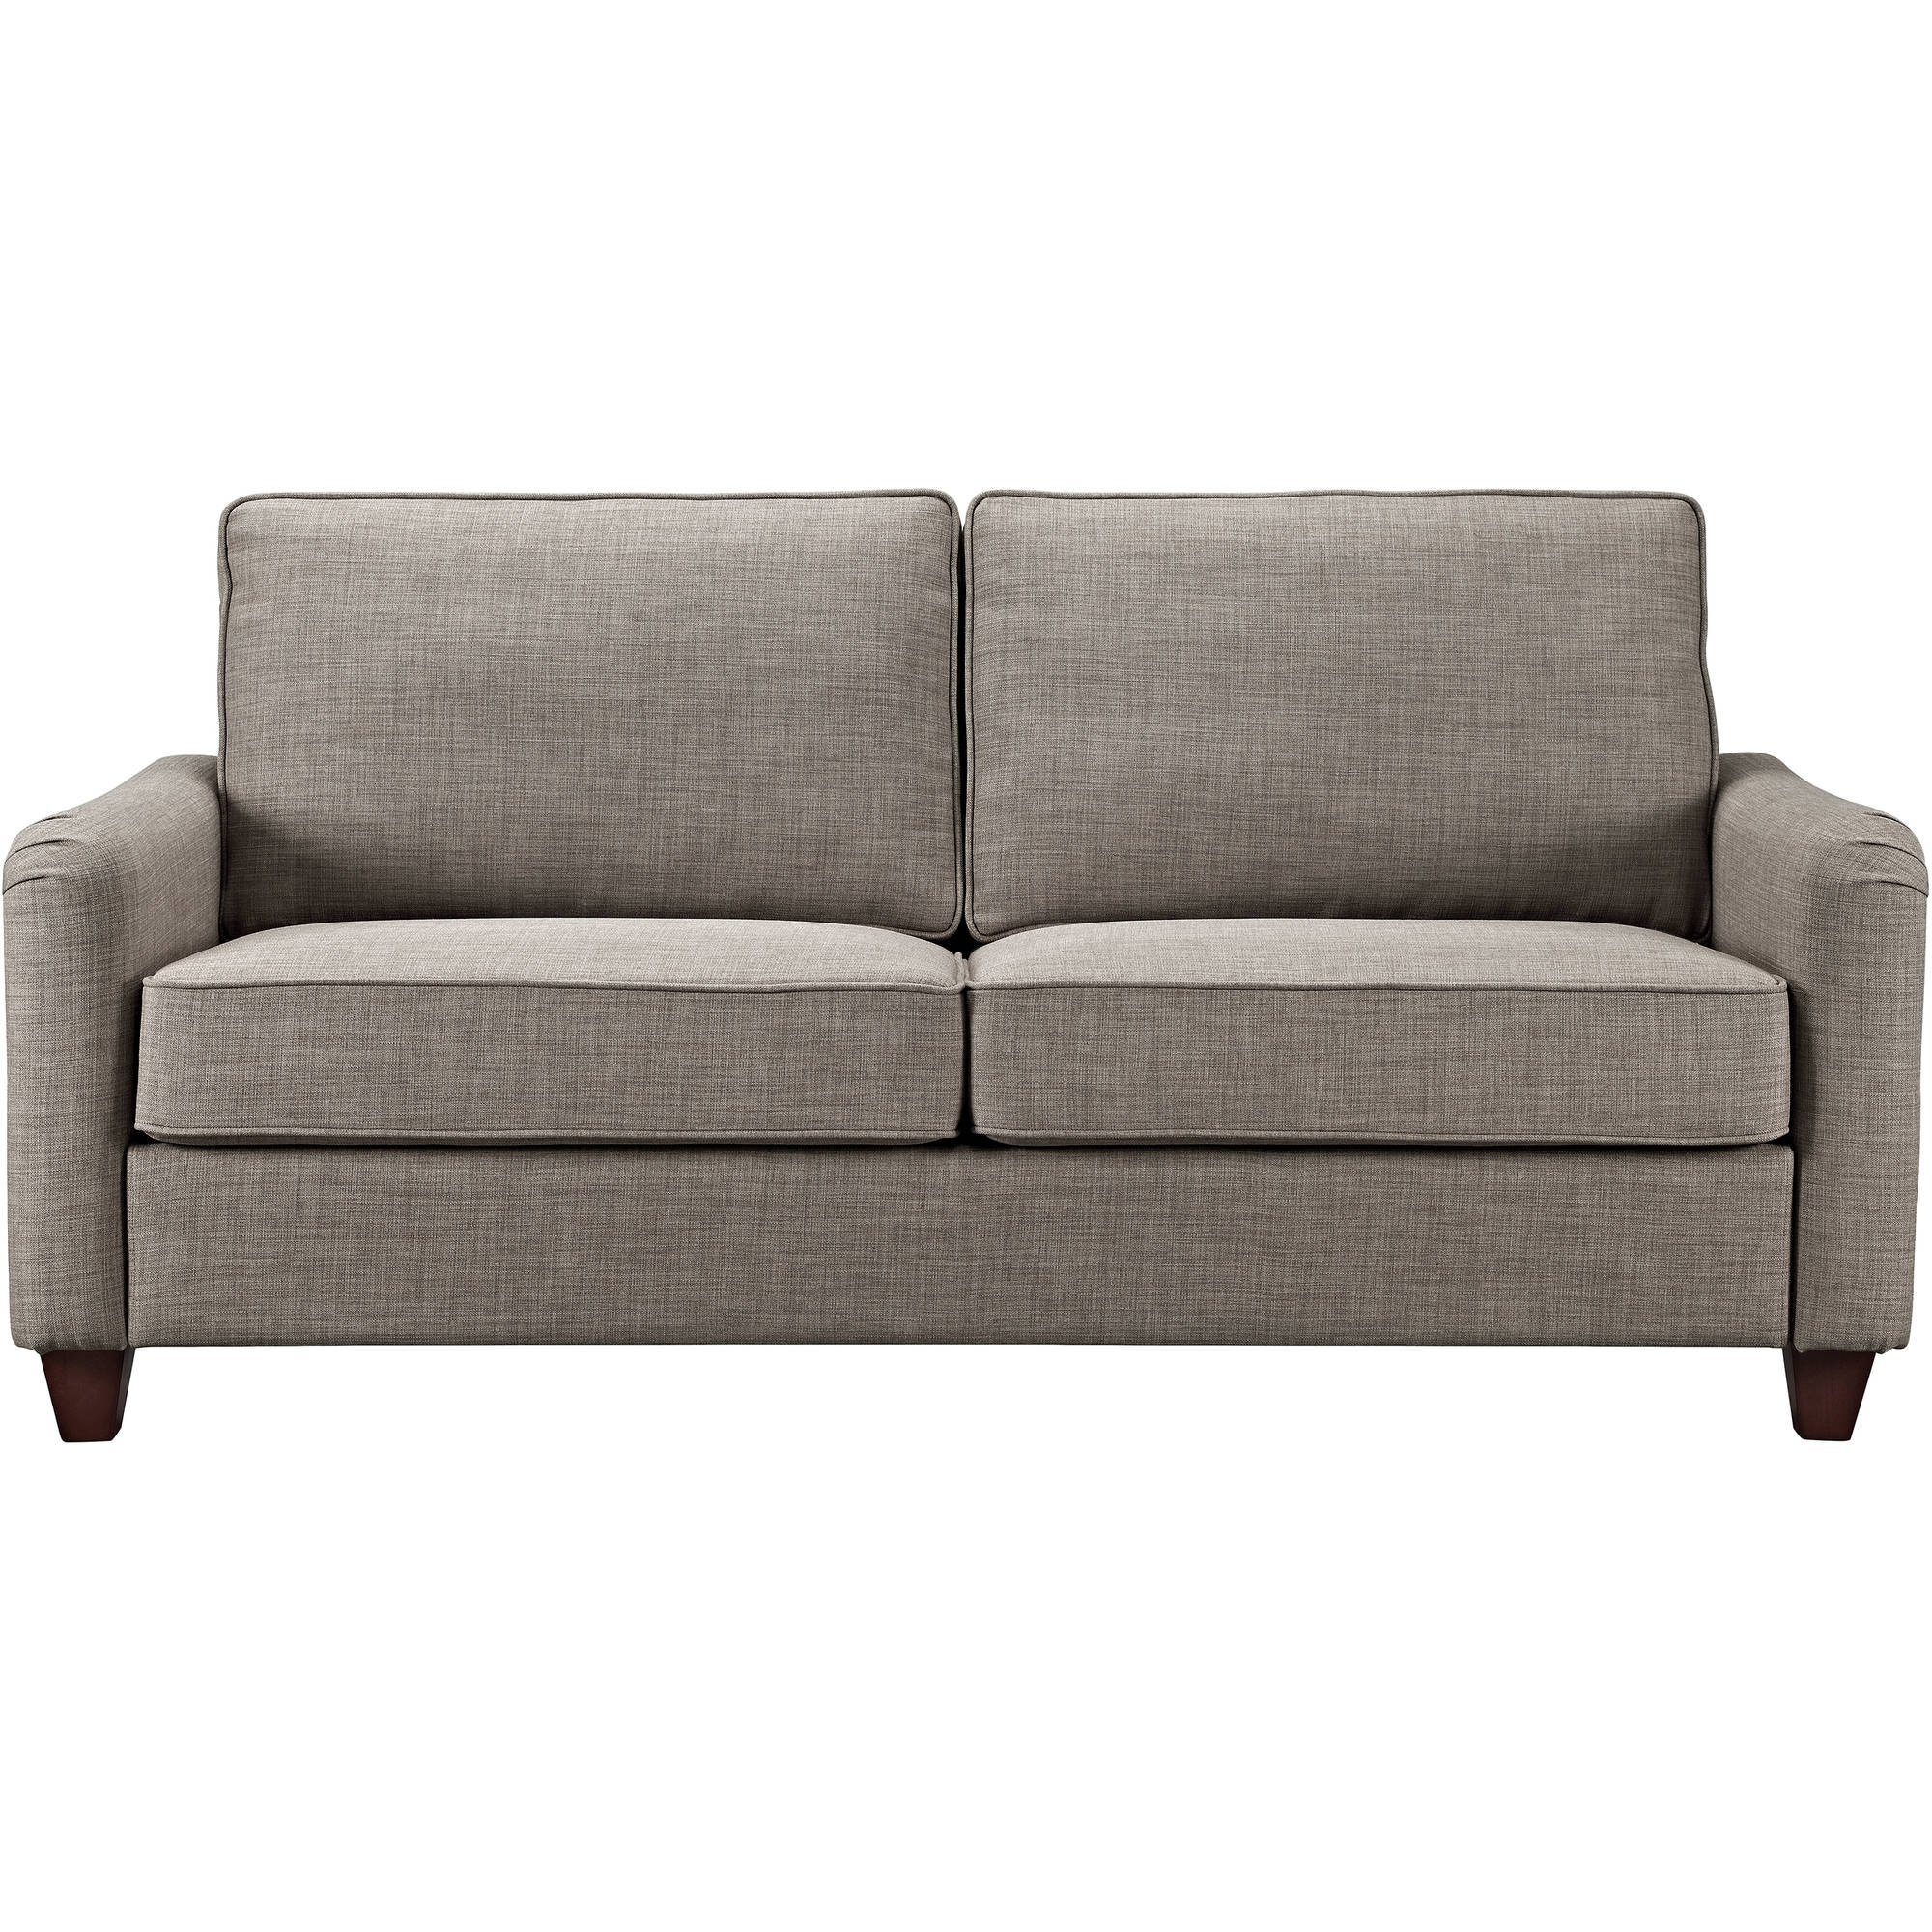 Most Recently Released Sectional Sofas Under 200 In Sofas & Couches – Walmart (View 9 of 20)